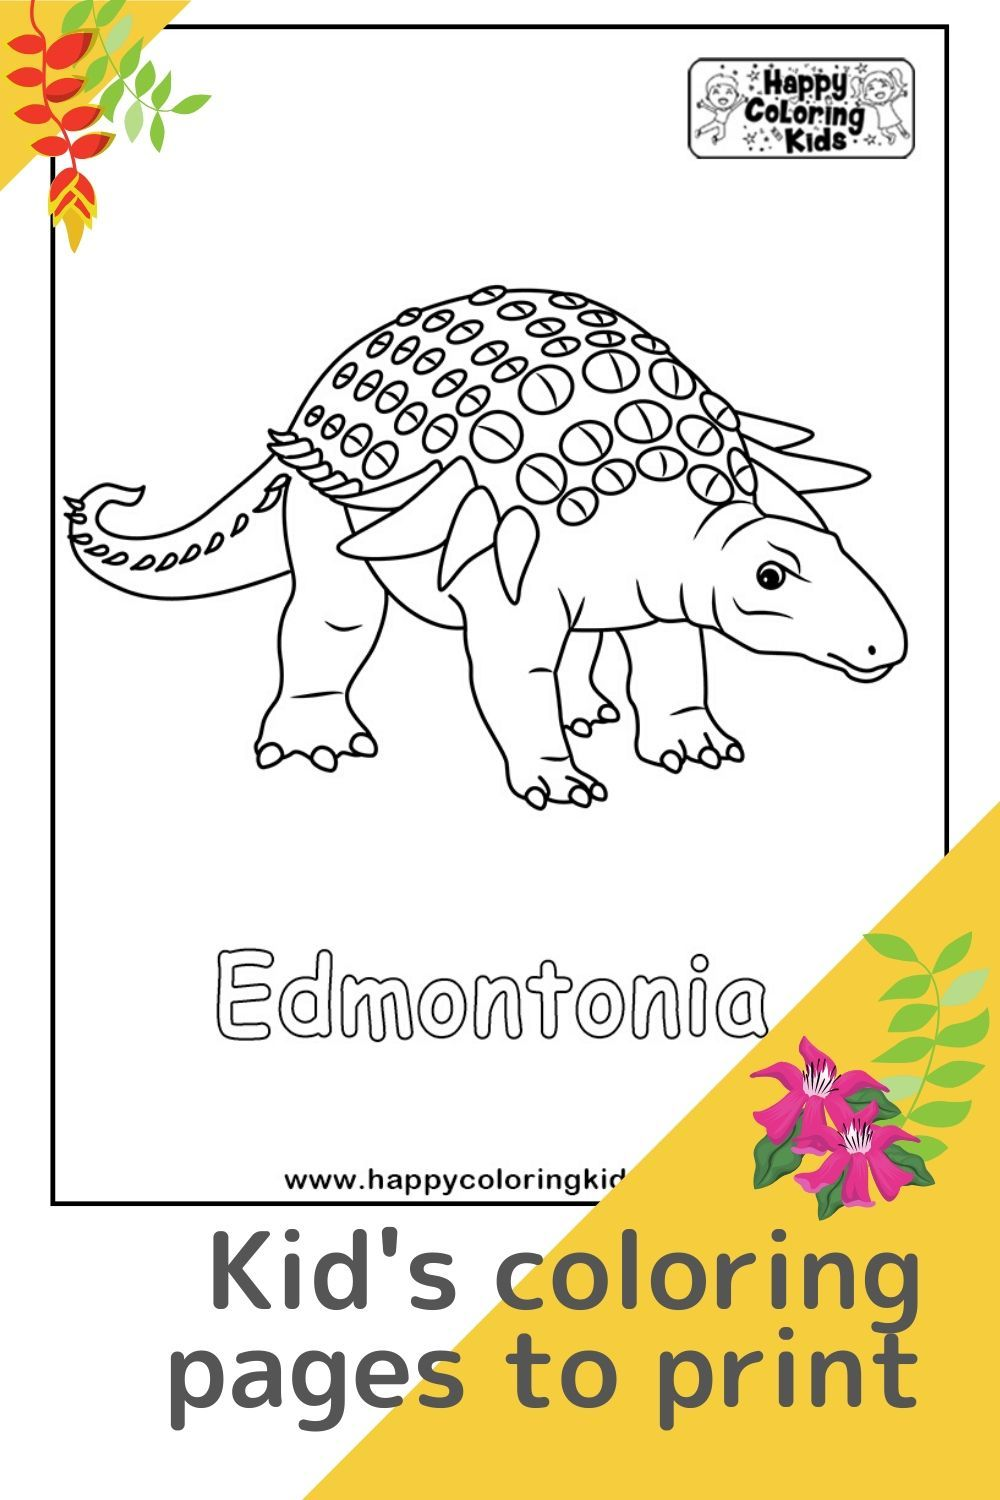 Pin on Dinosaurs Free Printable Coloring Pages for Kids